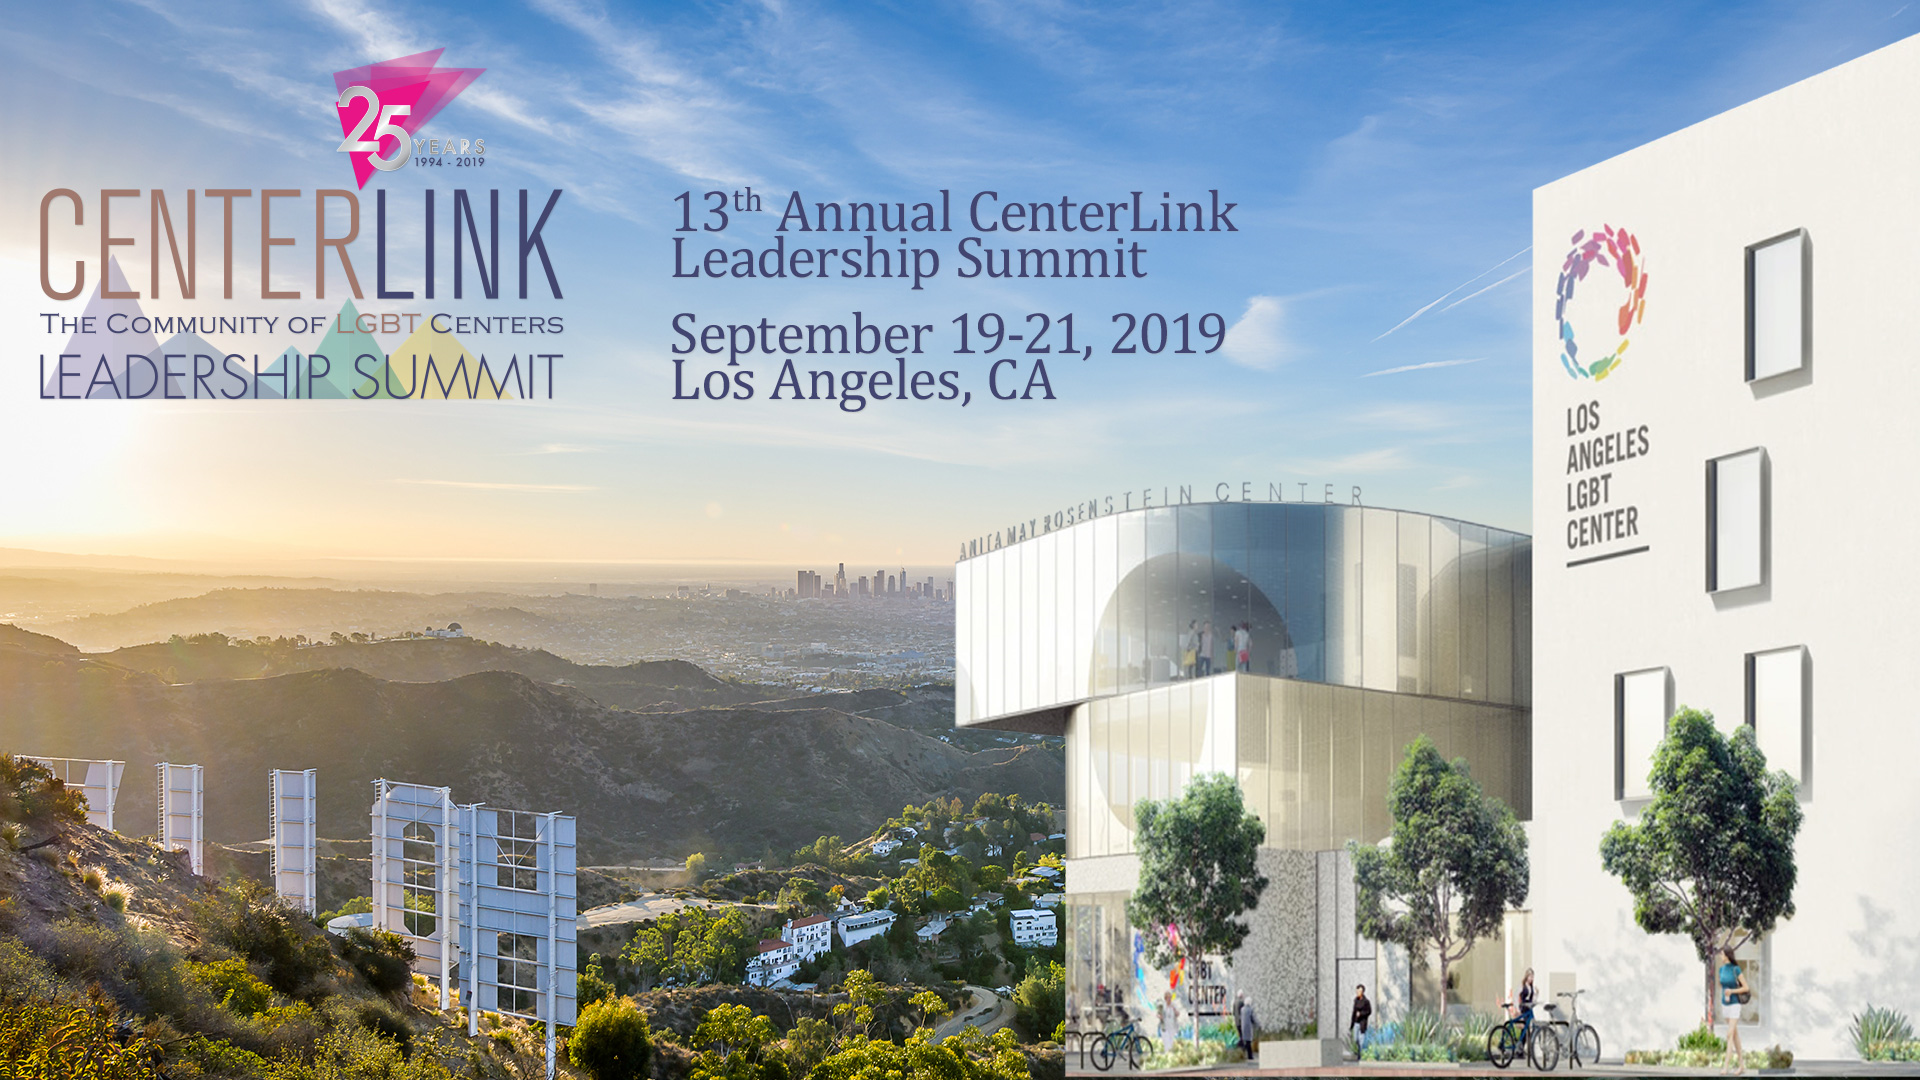 2019 CenterLink Leadership Summit